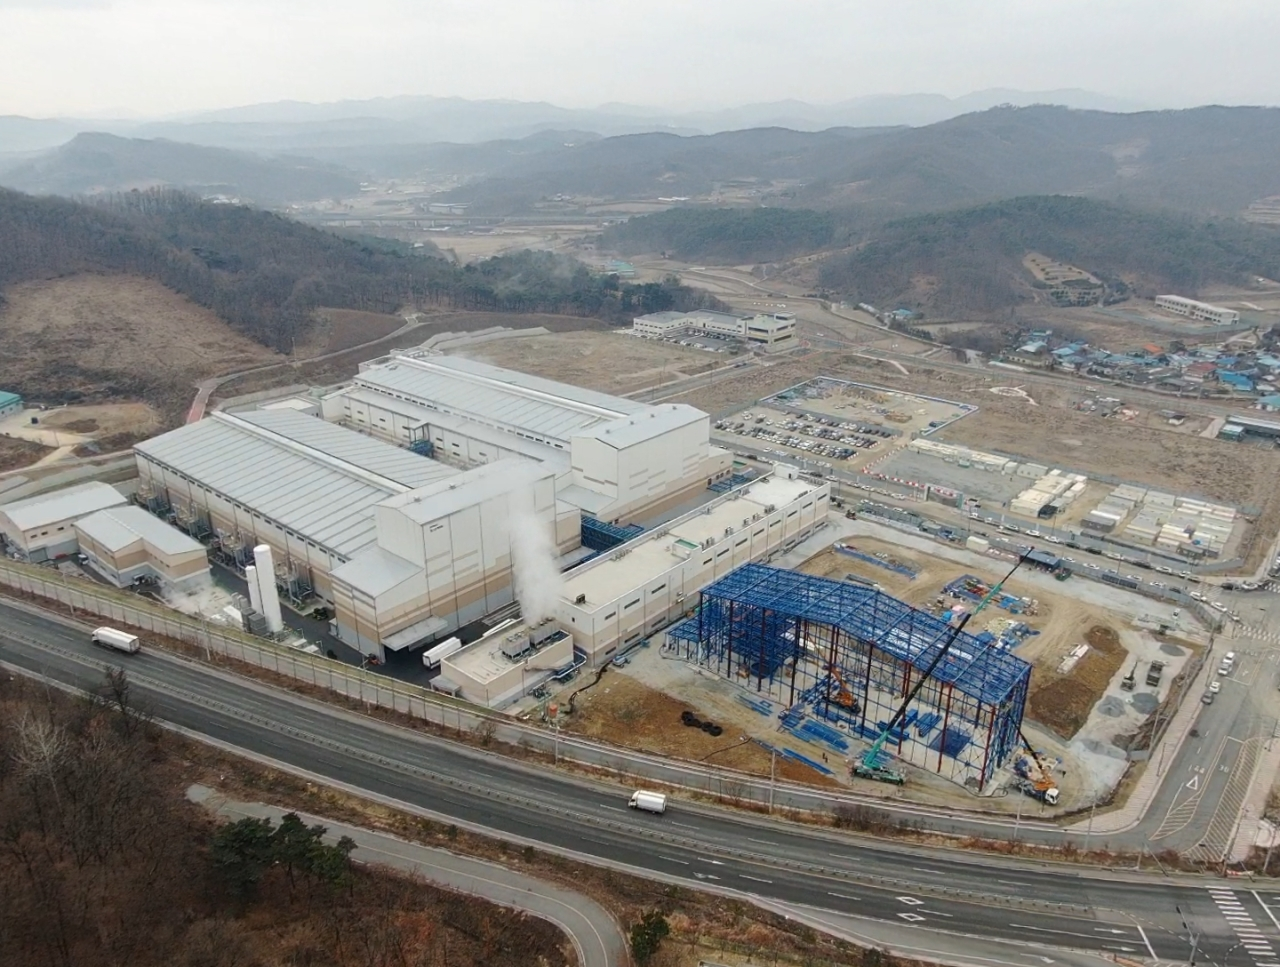 Posco Chemical's anode manufacturing plant in Sejong (Posco Chemical)